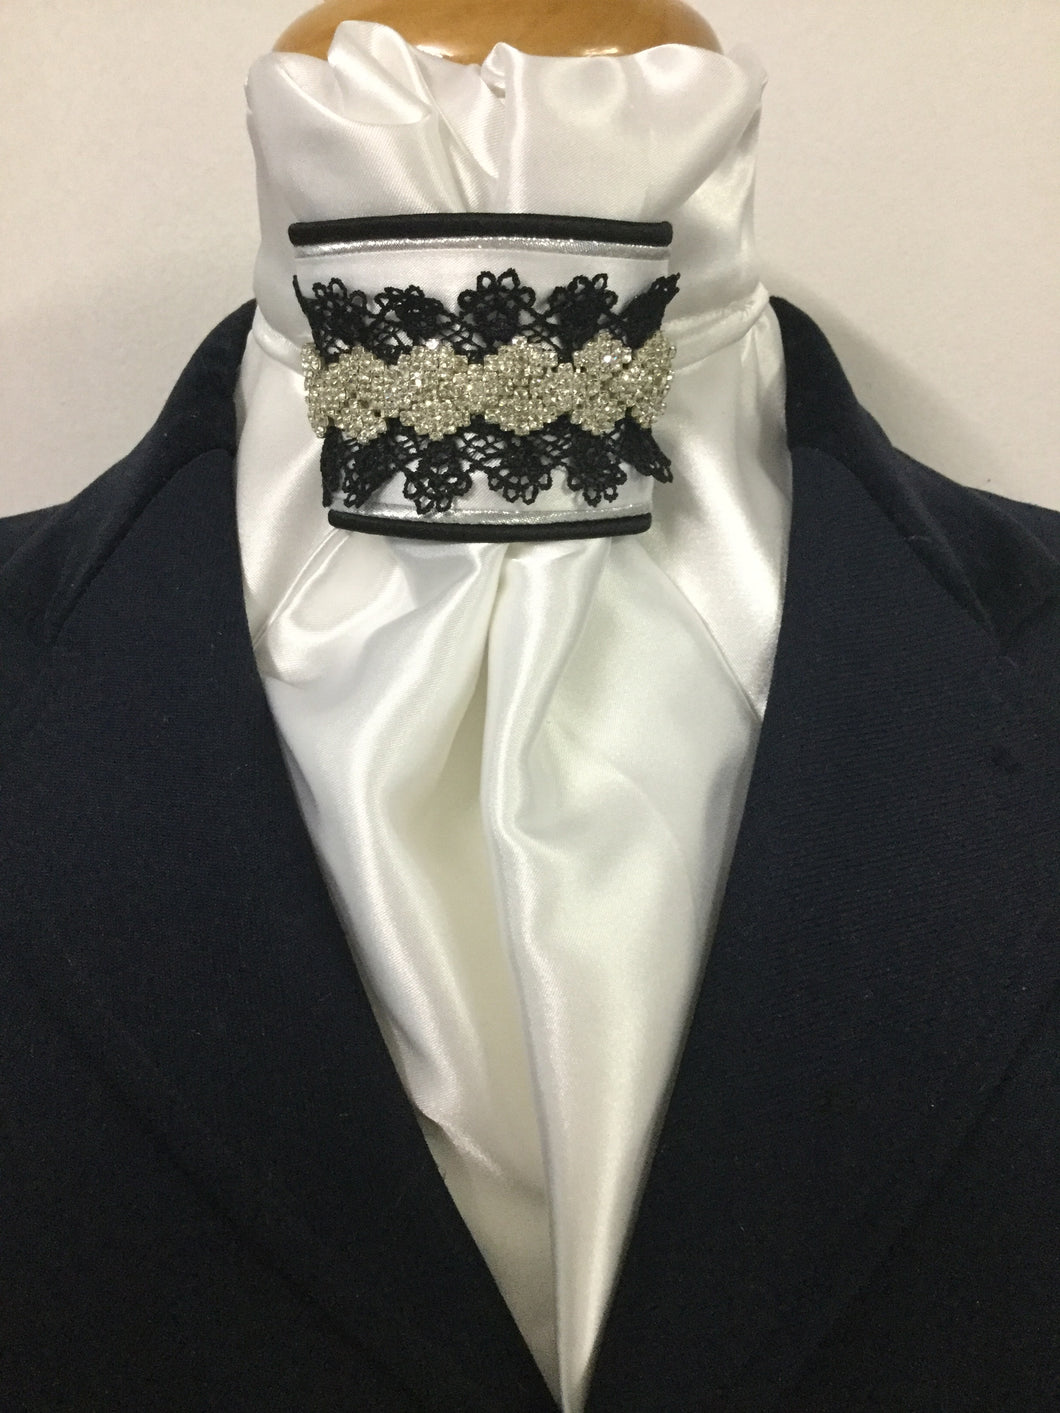 The HHD White Euro Stock Tie Diamonds & Lace in Black & Silver